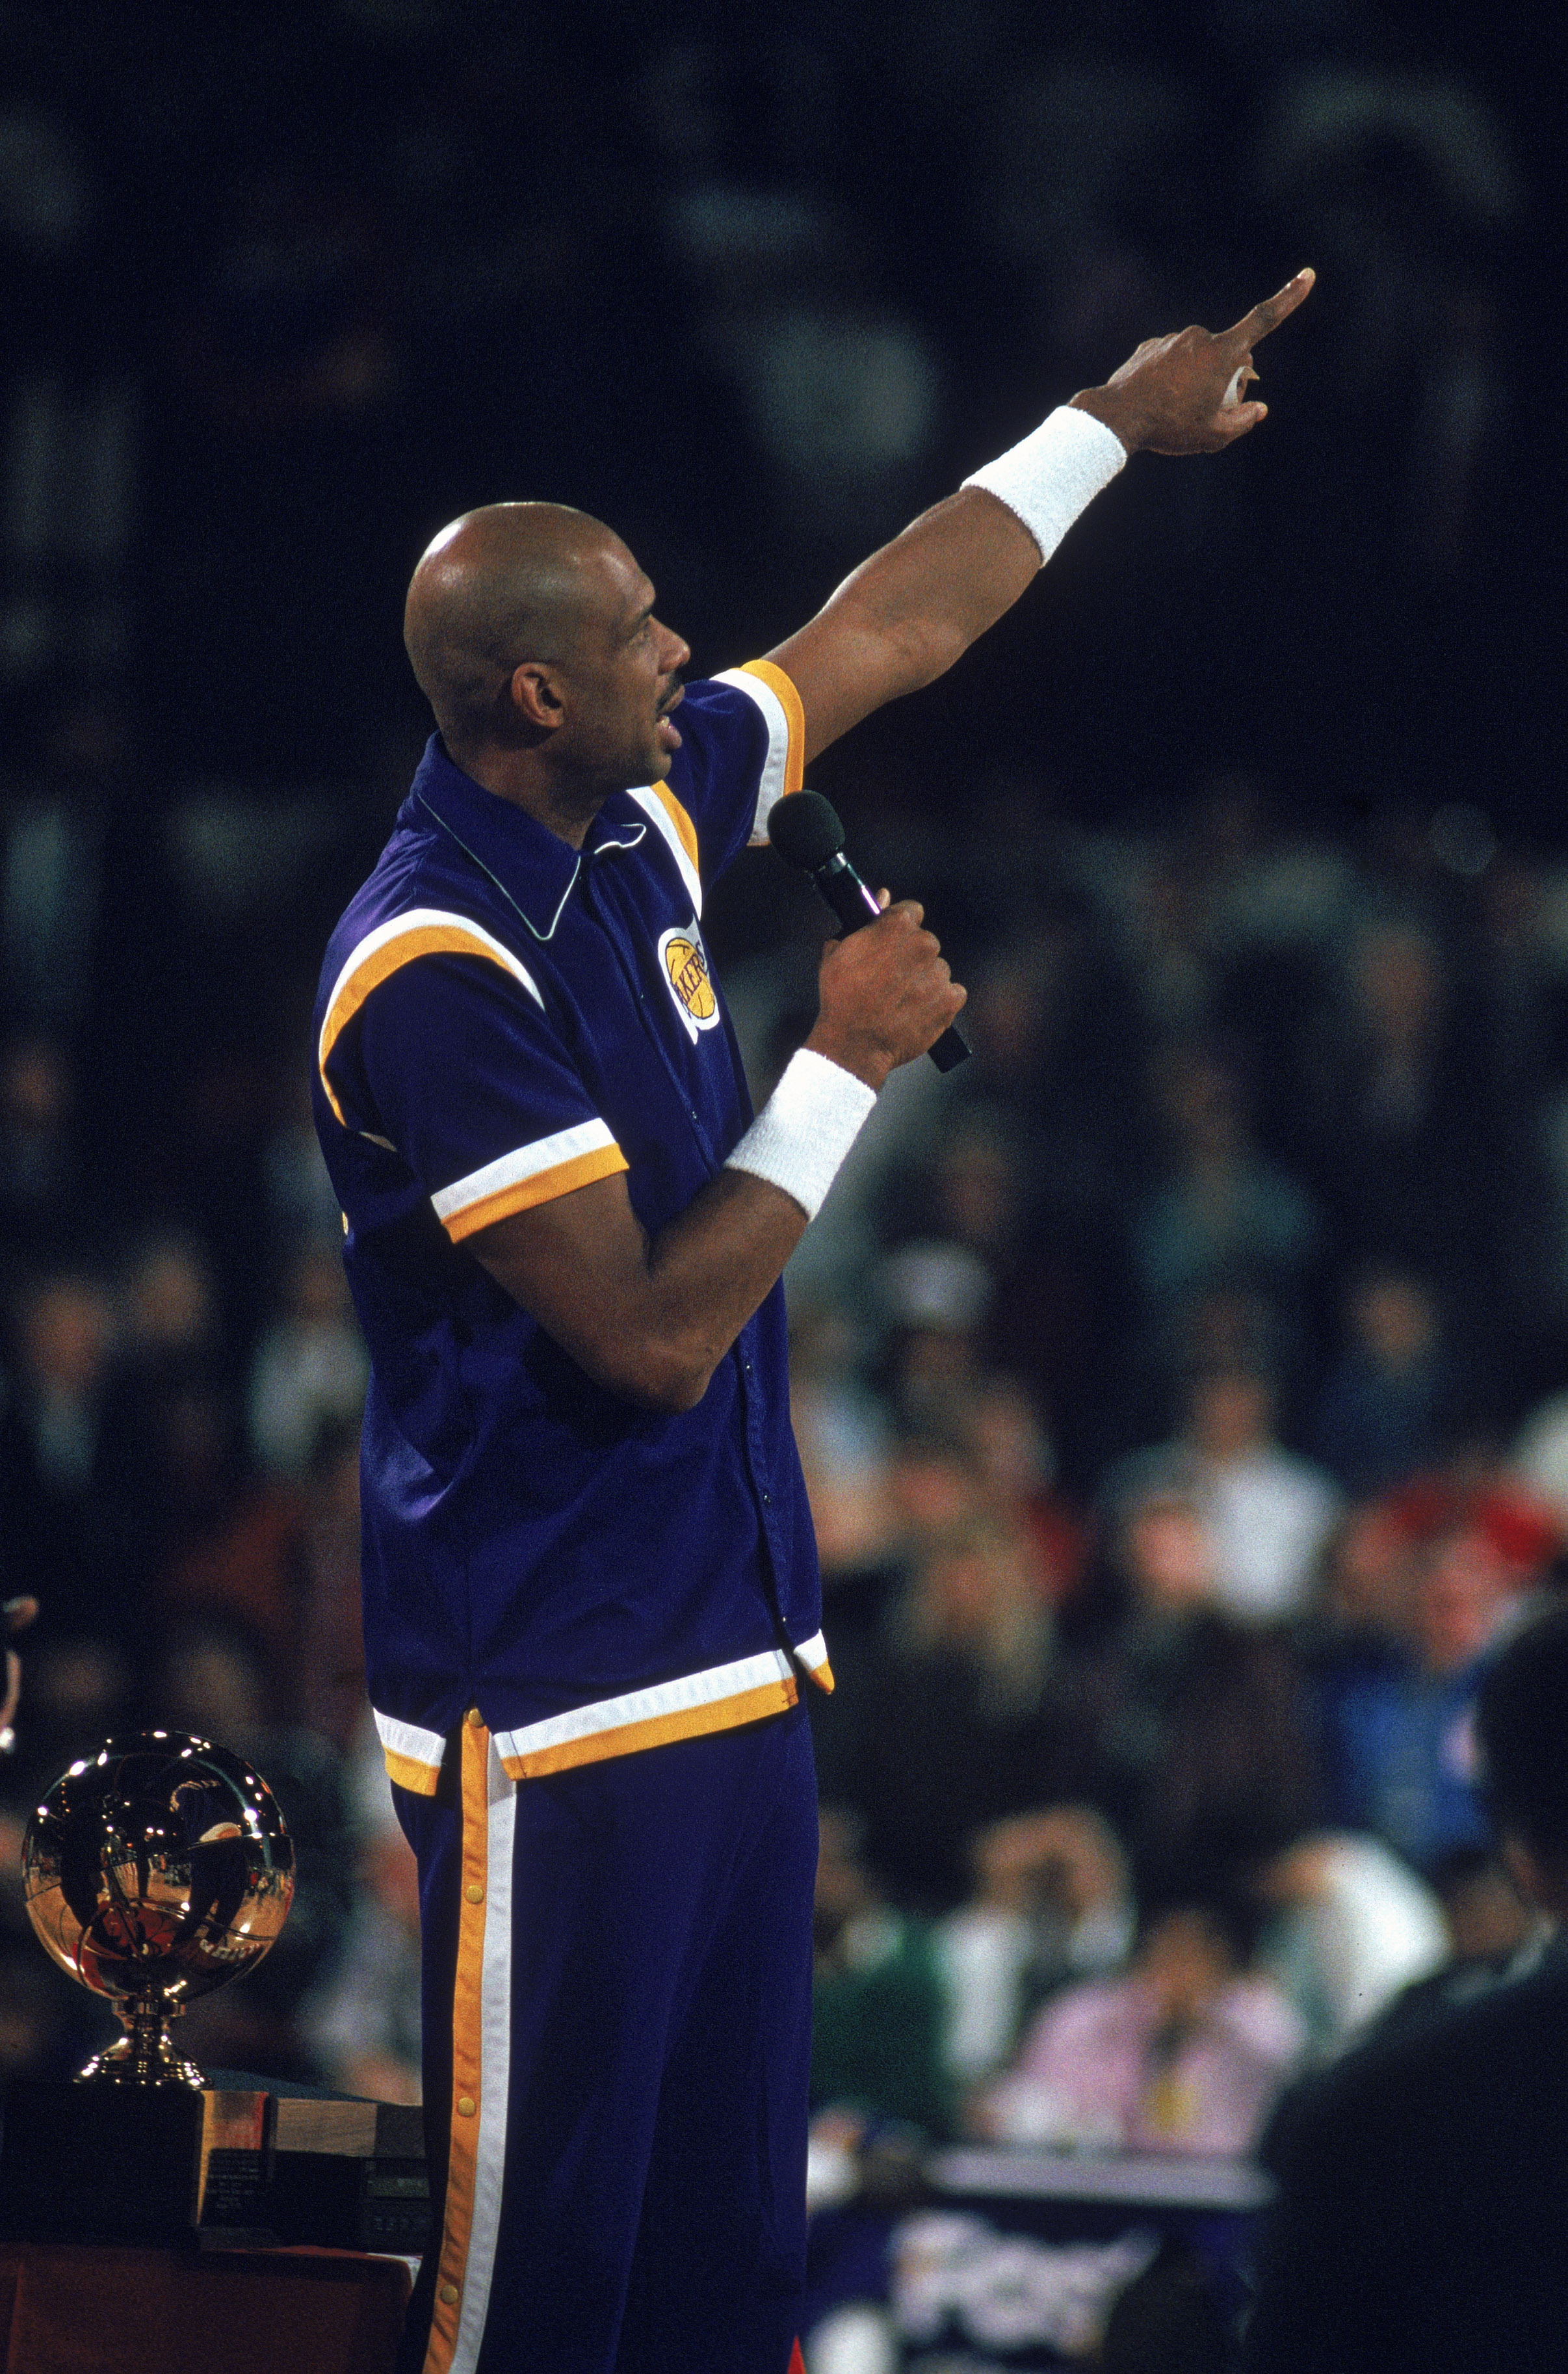 CHICAGO - 1989:  NBA Hall of Fame center Kareem Abdul-Jabbar #33 of the Los Angeles Lakers talks to the crowd after receiving an award during a ceremony at Chicago Stadium in Chicago, Illinois in 1989. (Photo by: Jonathan Daniel/Getty Images)